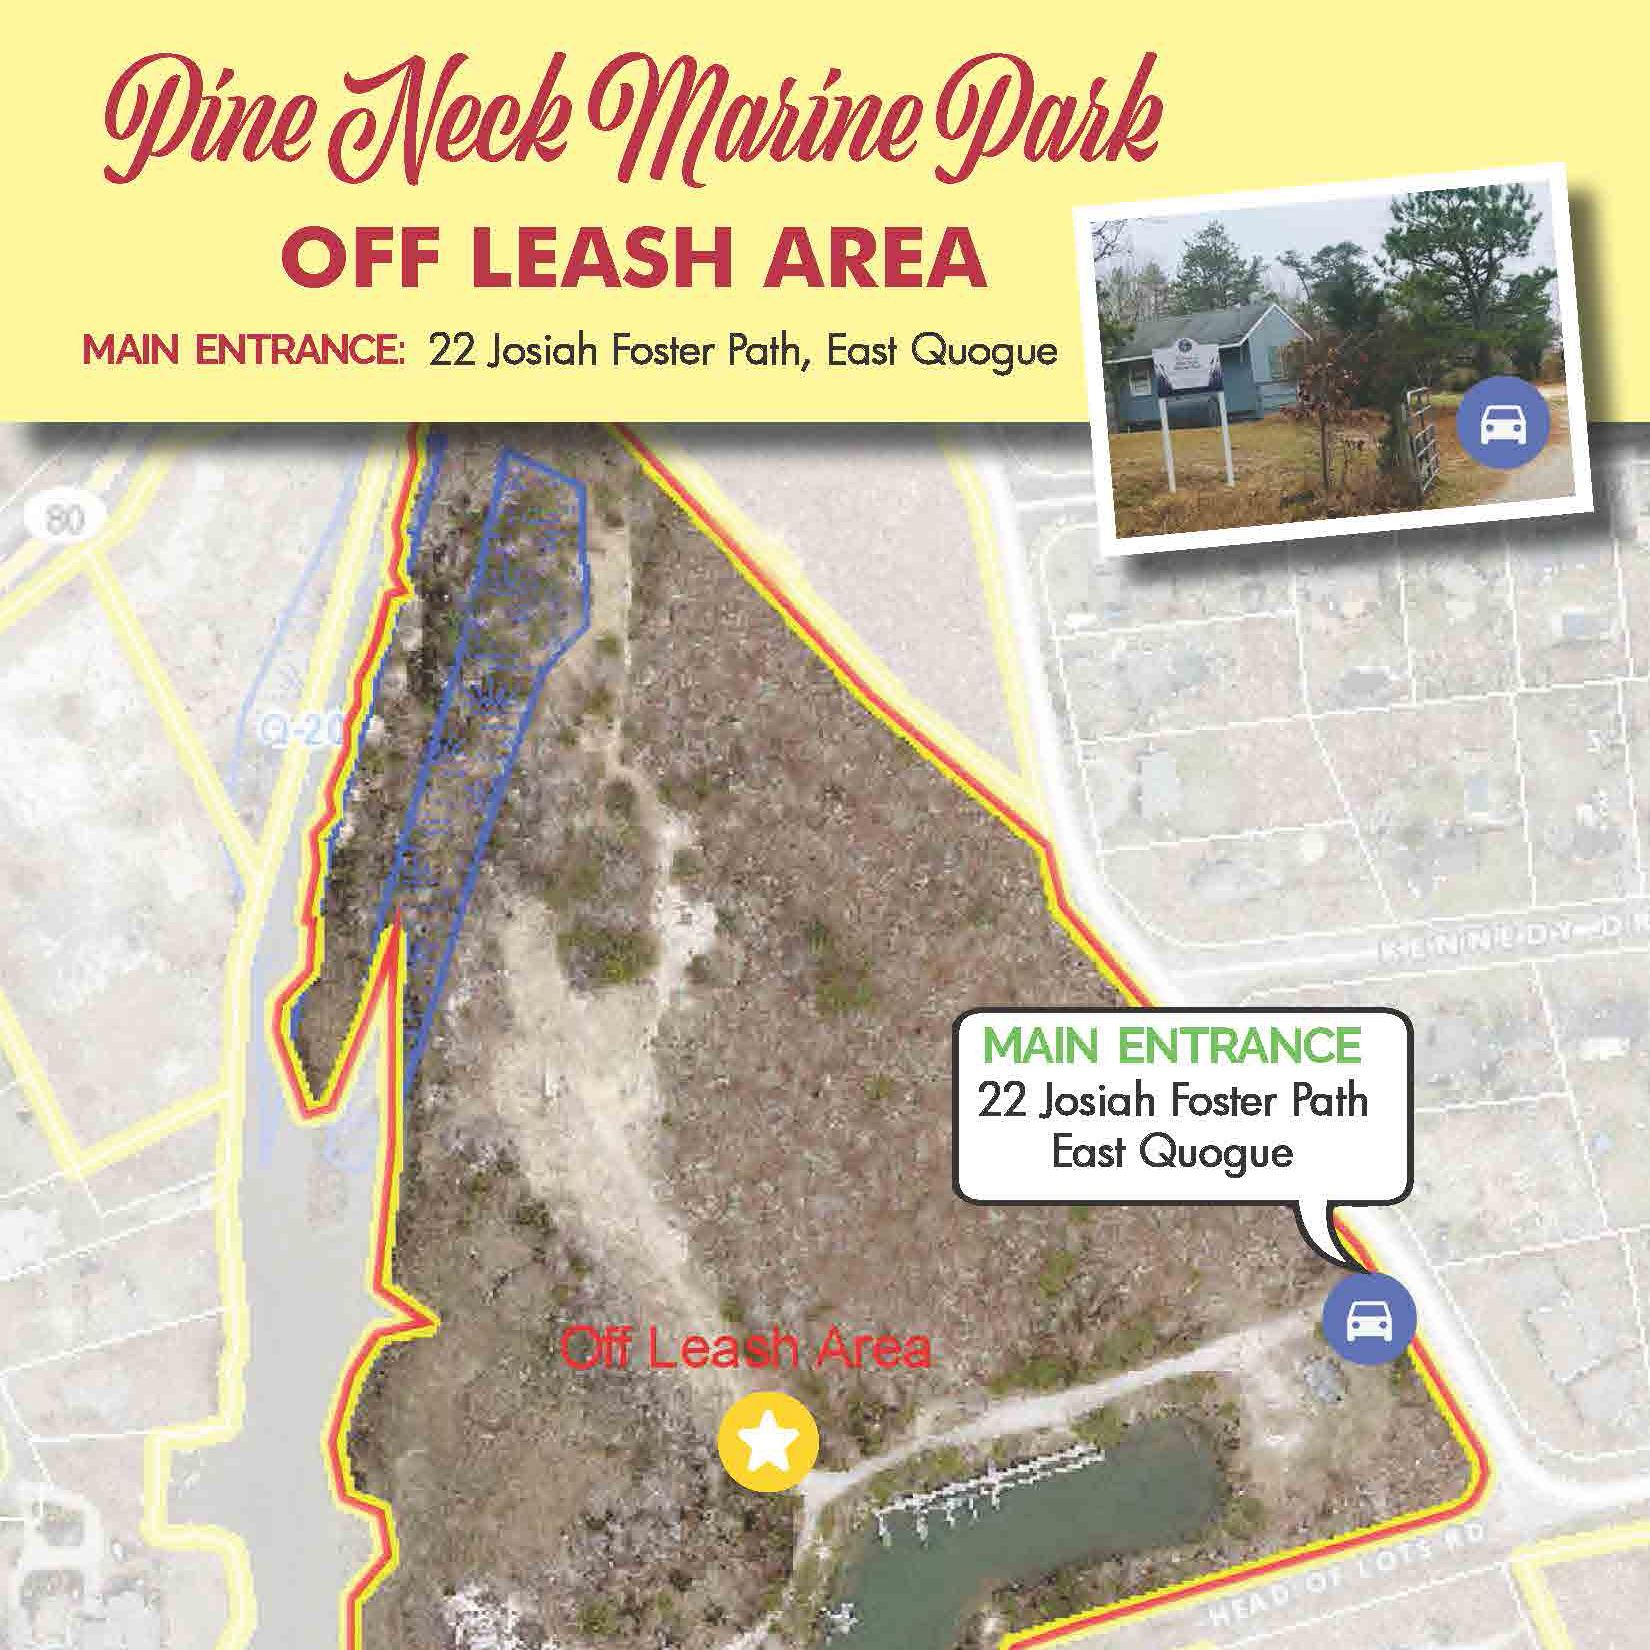 Pine Neck Marine Park Off Leash Area-updated-12-15-20_Page_1 1x1